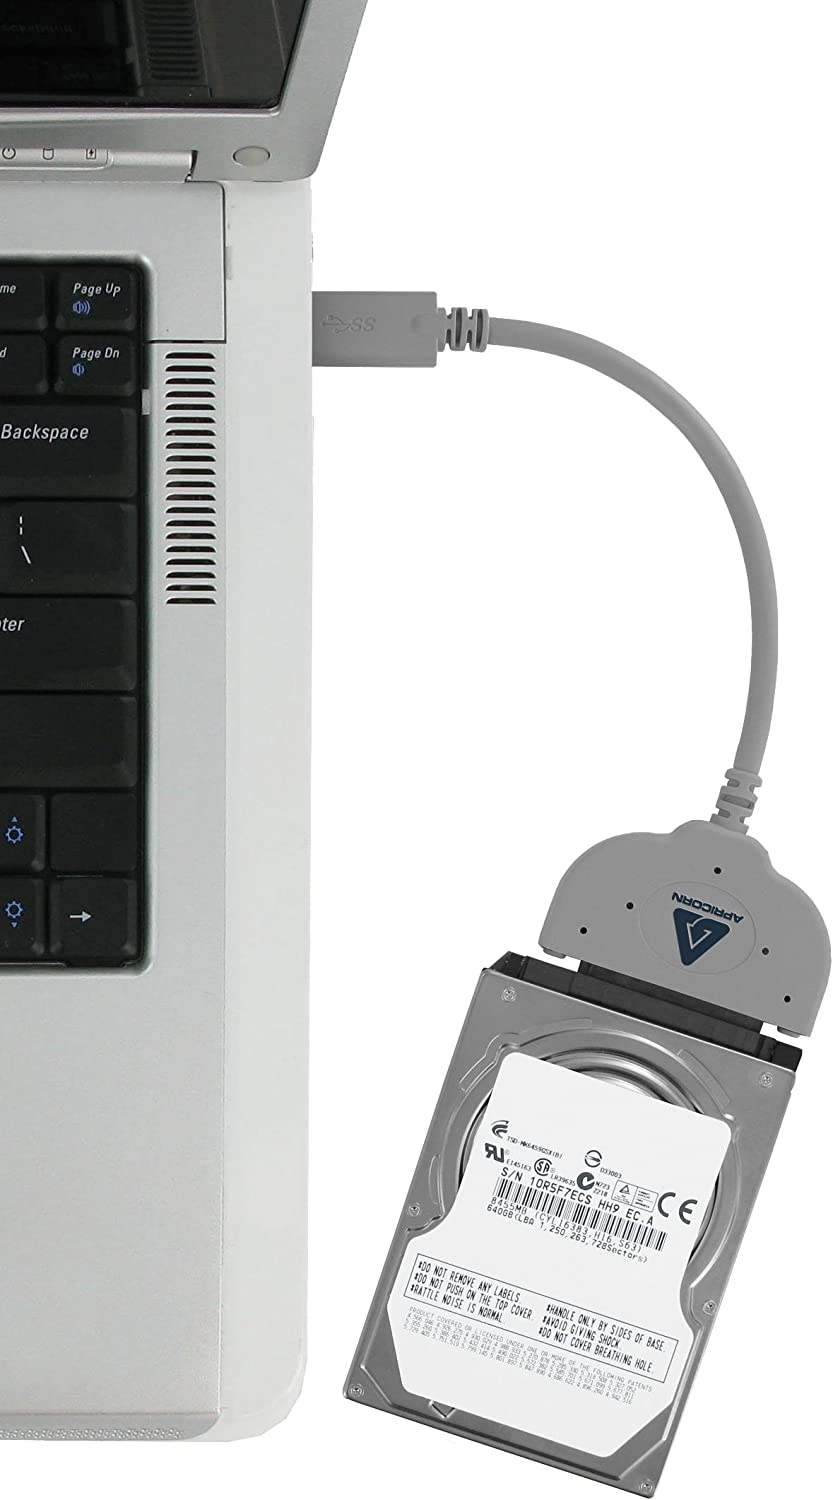 Grey Apricorn SATA Wire Notebook Hard Drive Upgrade Kit with USB 3.0 Connection ASW-USB3-25